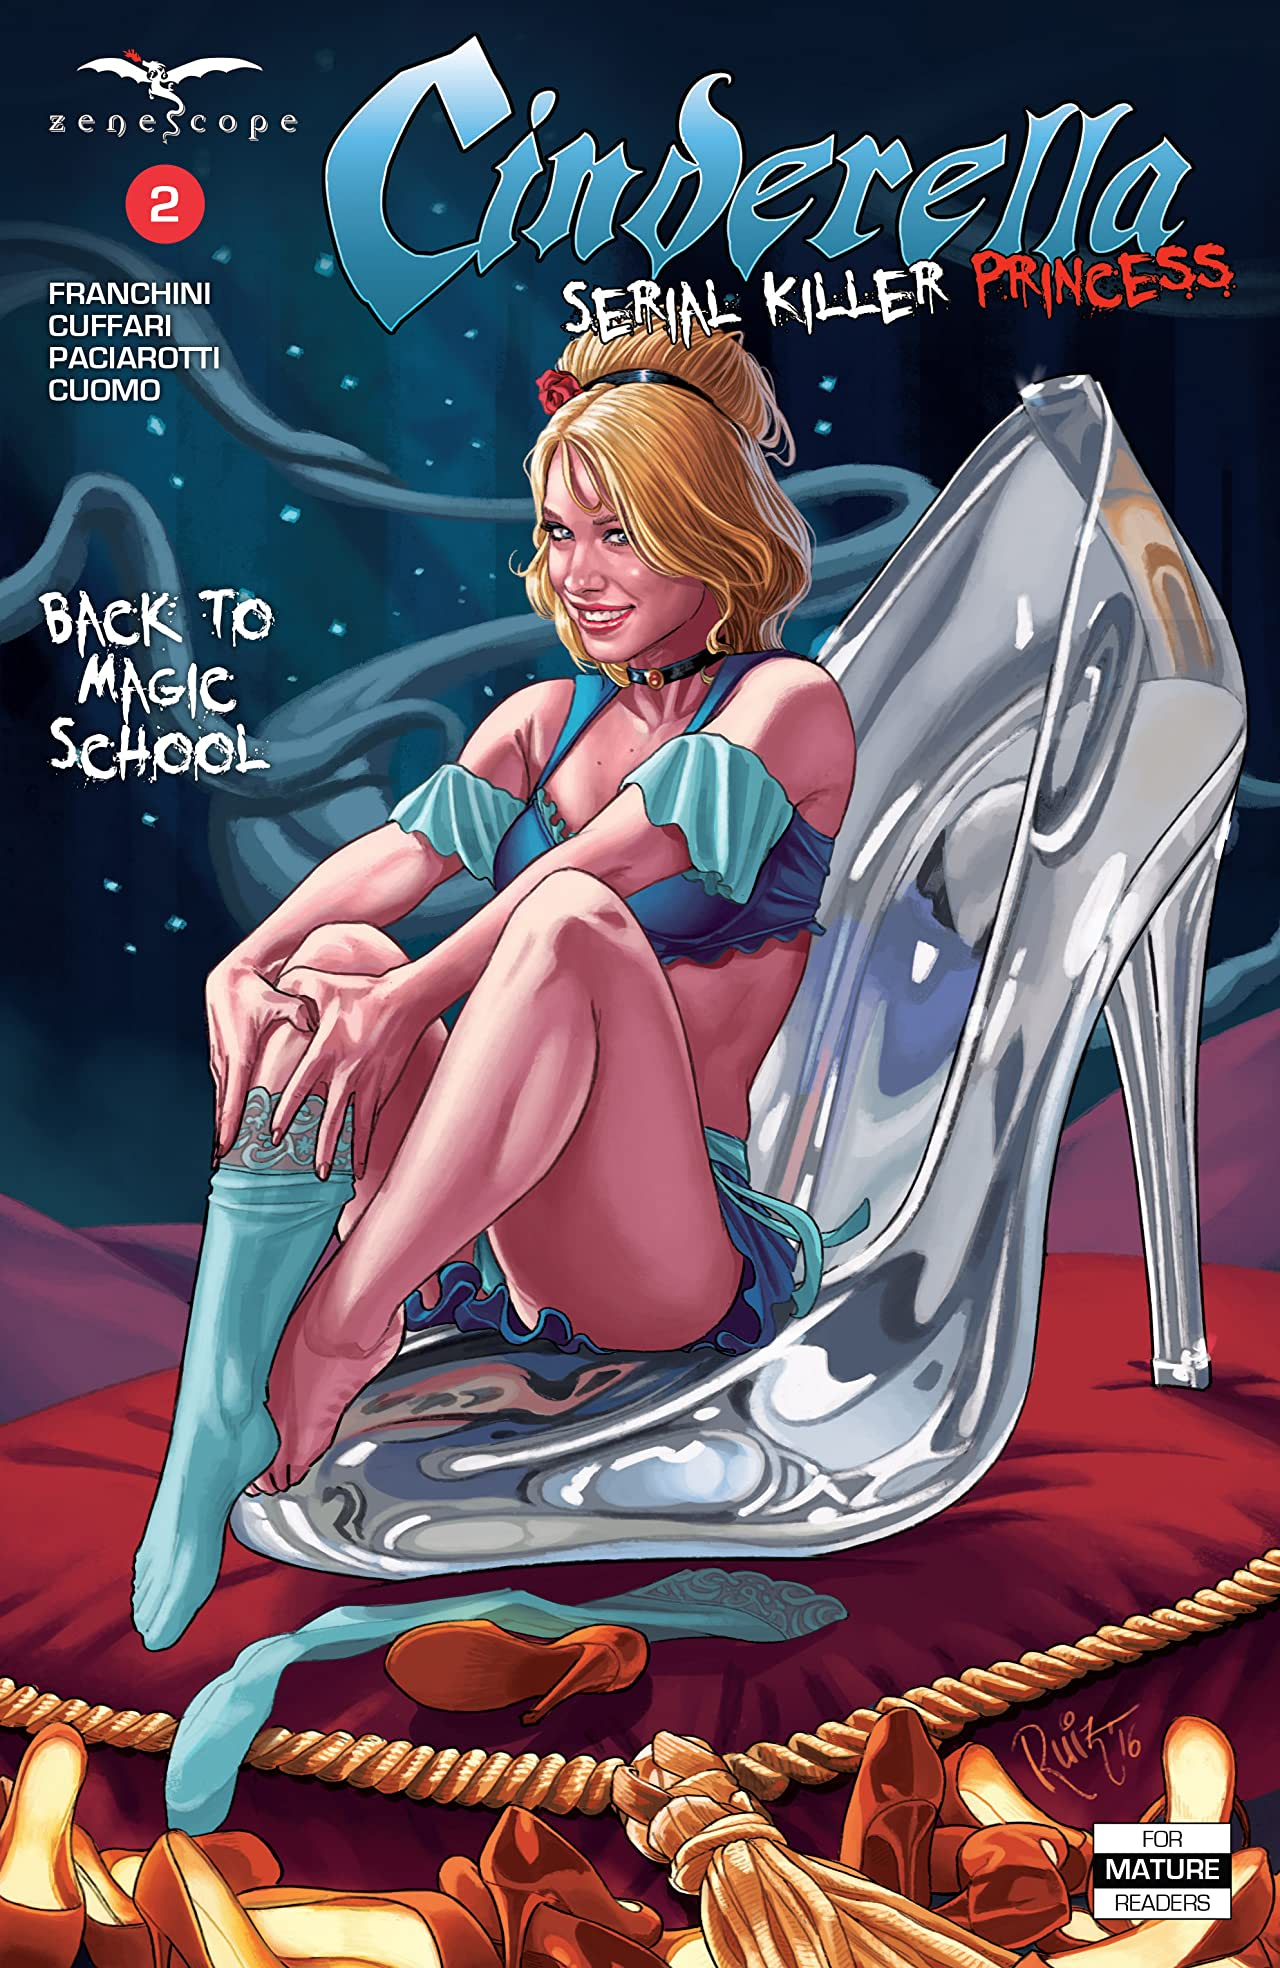 Cinderella: Serial Killer Princess #2